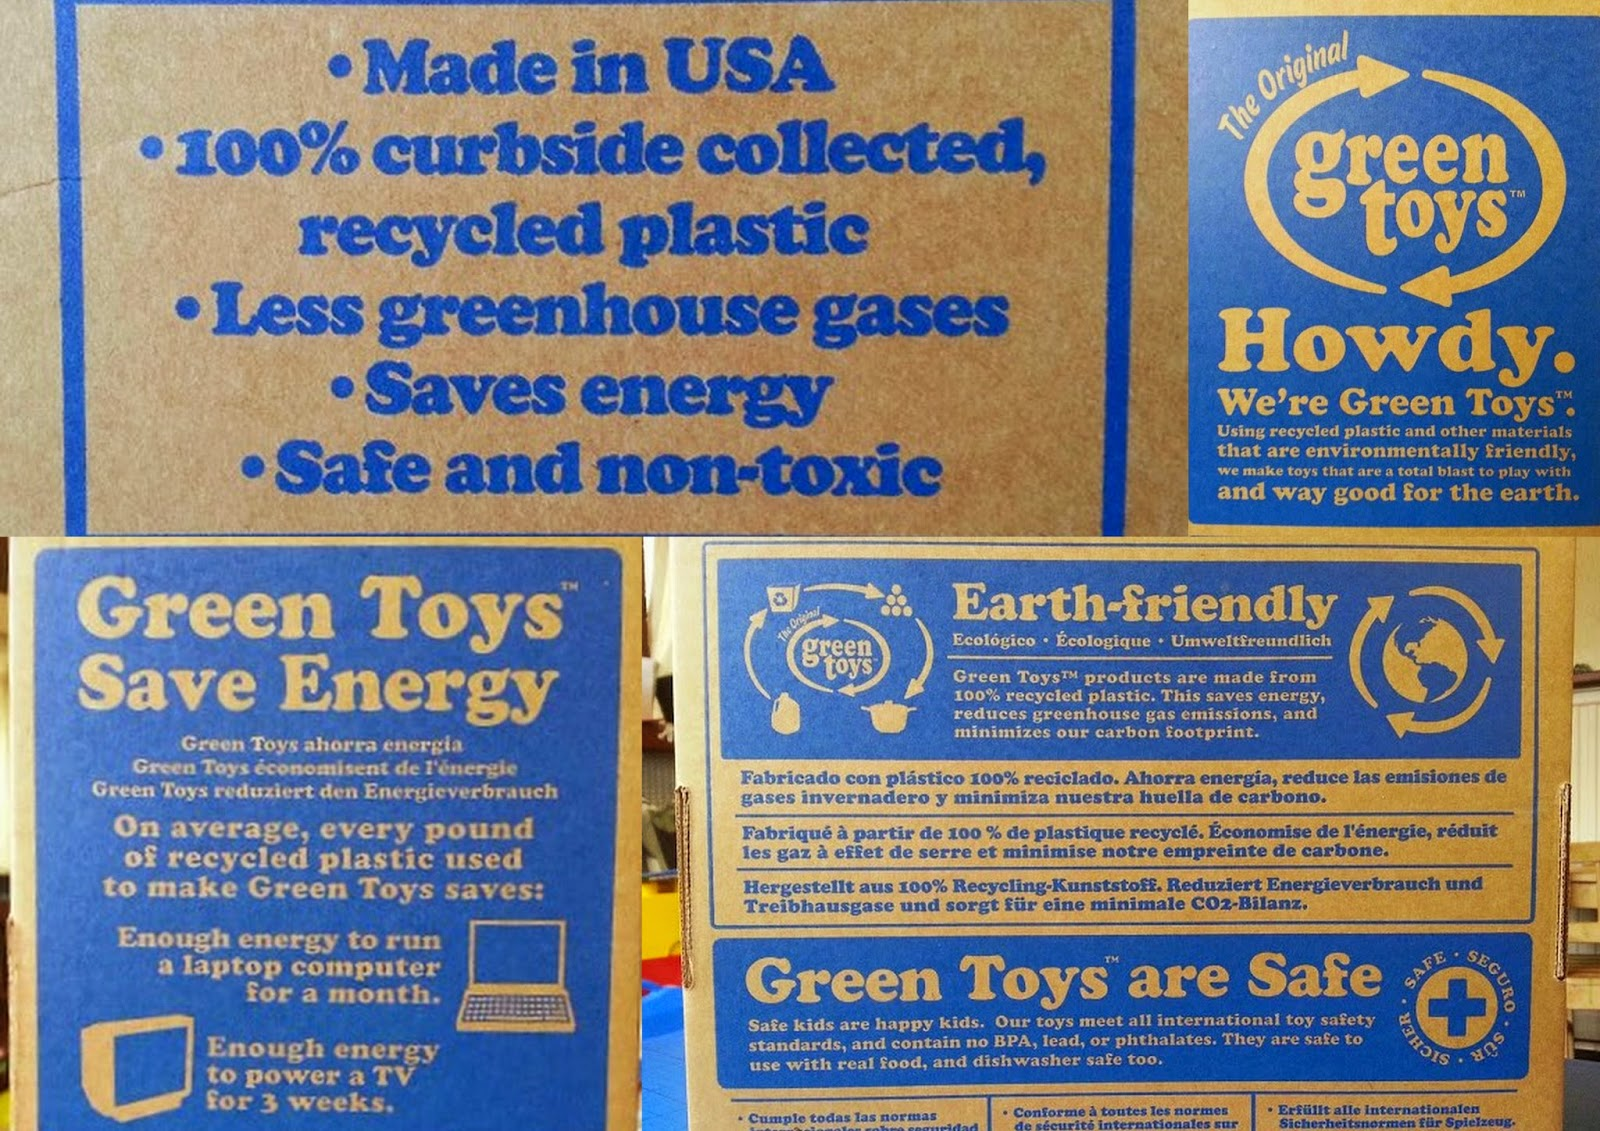 Green Toys Recycled Plastic Cookware And Dining Set pack information